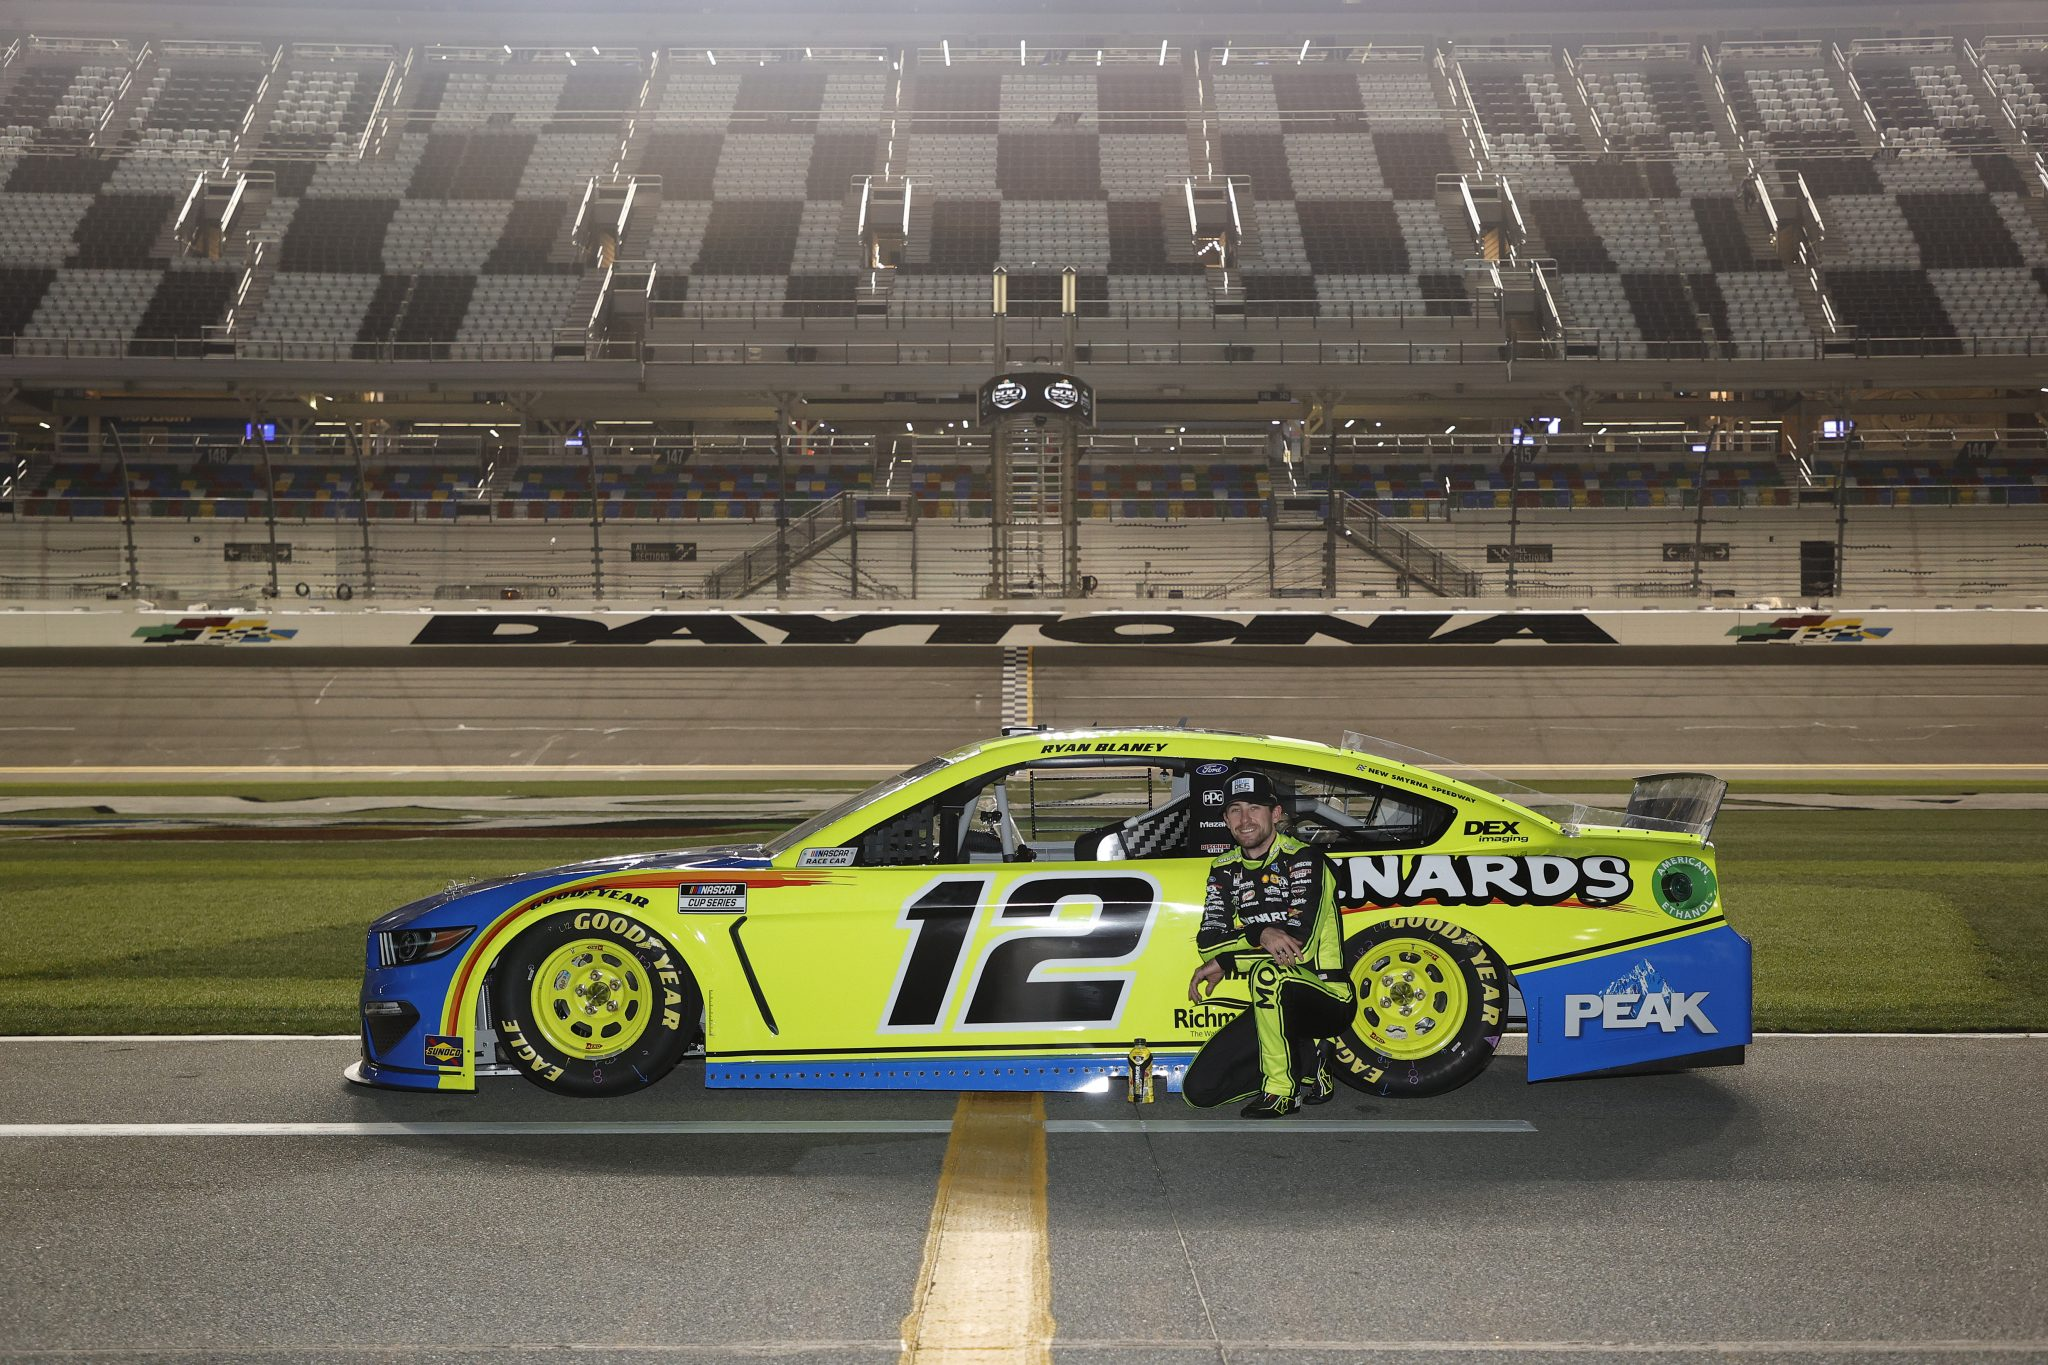 DAYTONA BEACH, FLORIDA - FEBRUARY 10: Ryan Blaney, driver of the #12 Menards/Blue DEF/PEAK Ford, poses for photos during qualifying for the NASCAR Cup Series 63rd Annual Daytona 500 at Daytona International Speedway on February 10, 2021 in Daytona Beach, Florida. (Photo by Jared C. Tilton/Getty Images) | Getty Images